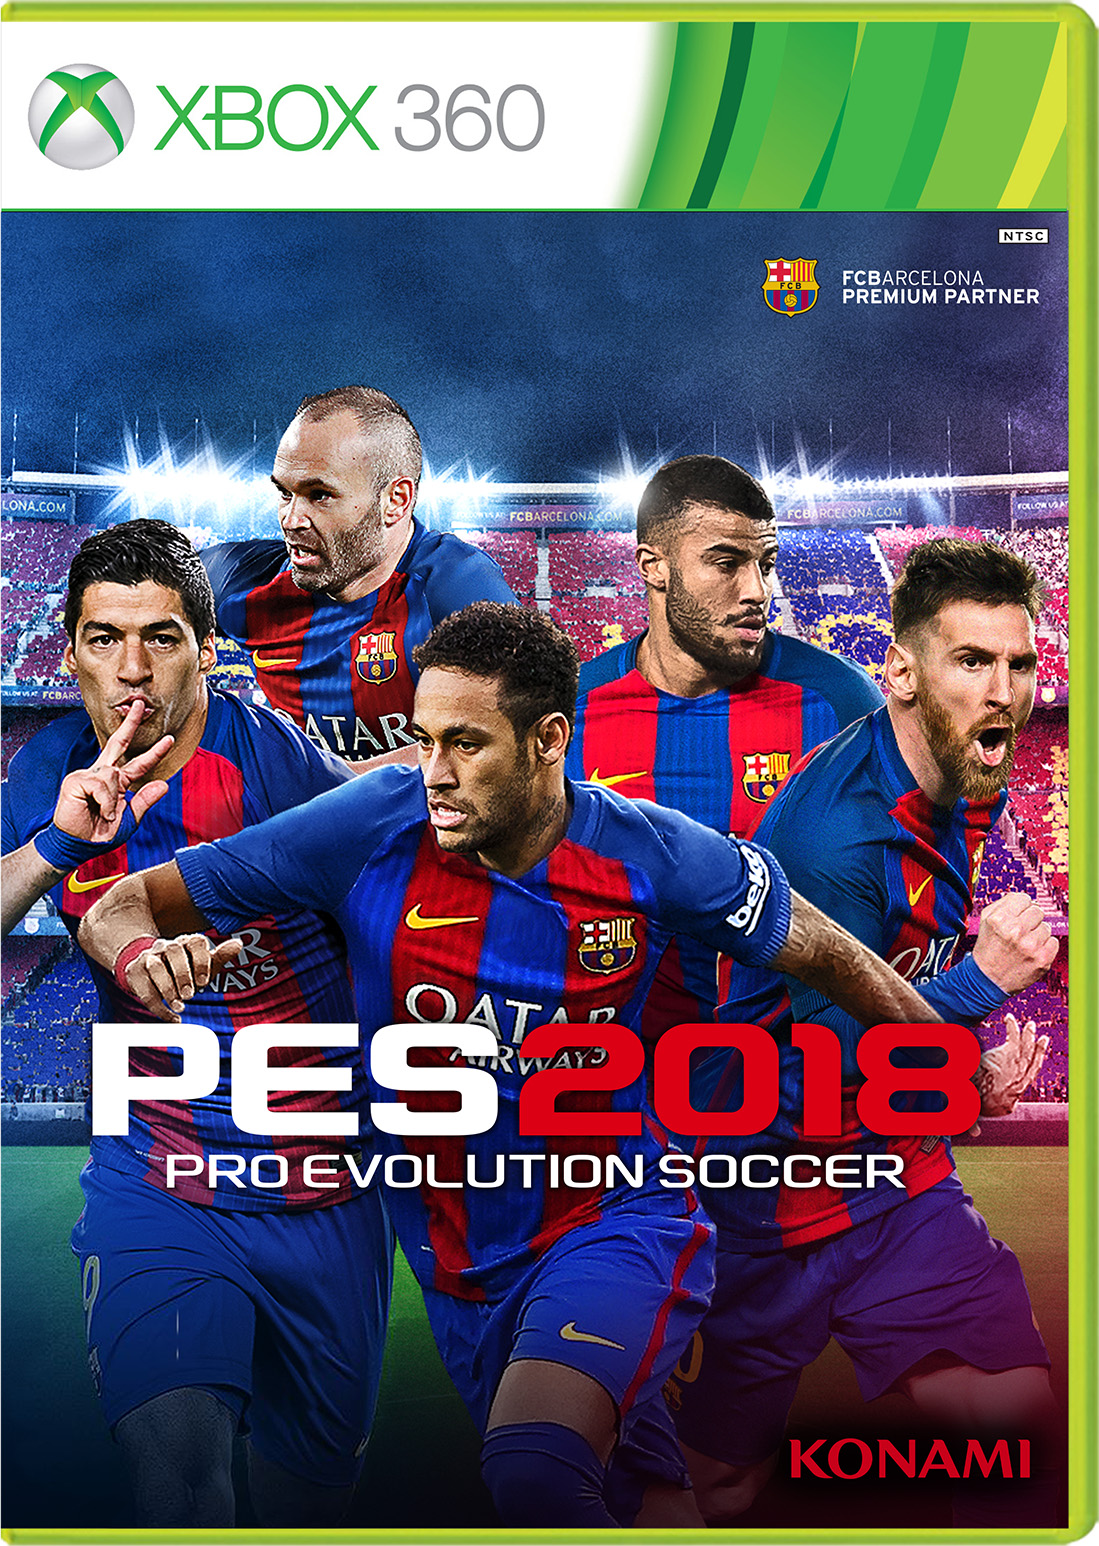 Pro Evolution Soccer 2018 for Xbox 360